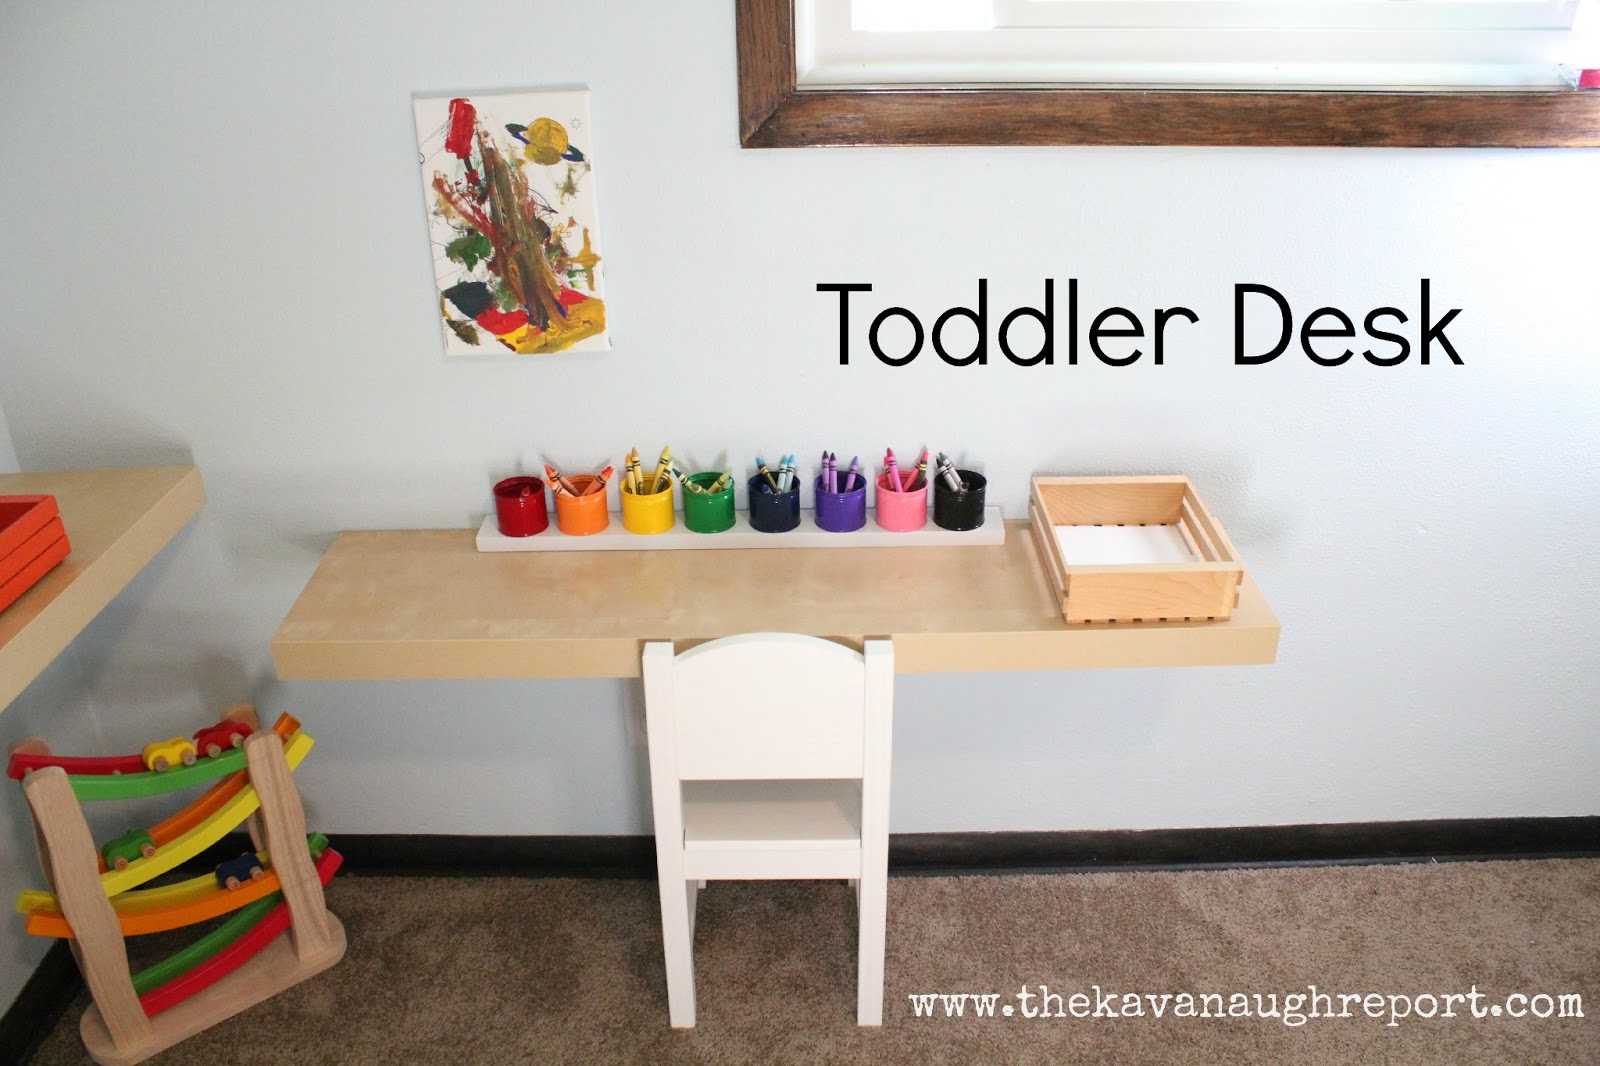 bedroom temeculavalleyslowfood good theme ideas toddler